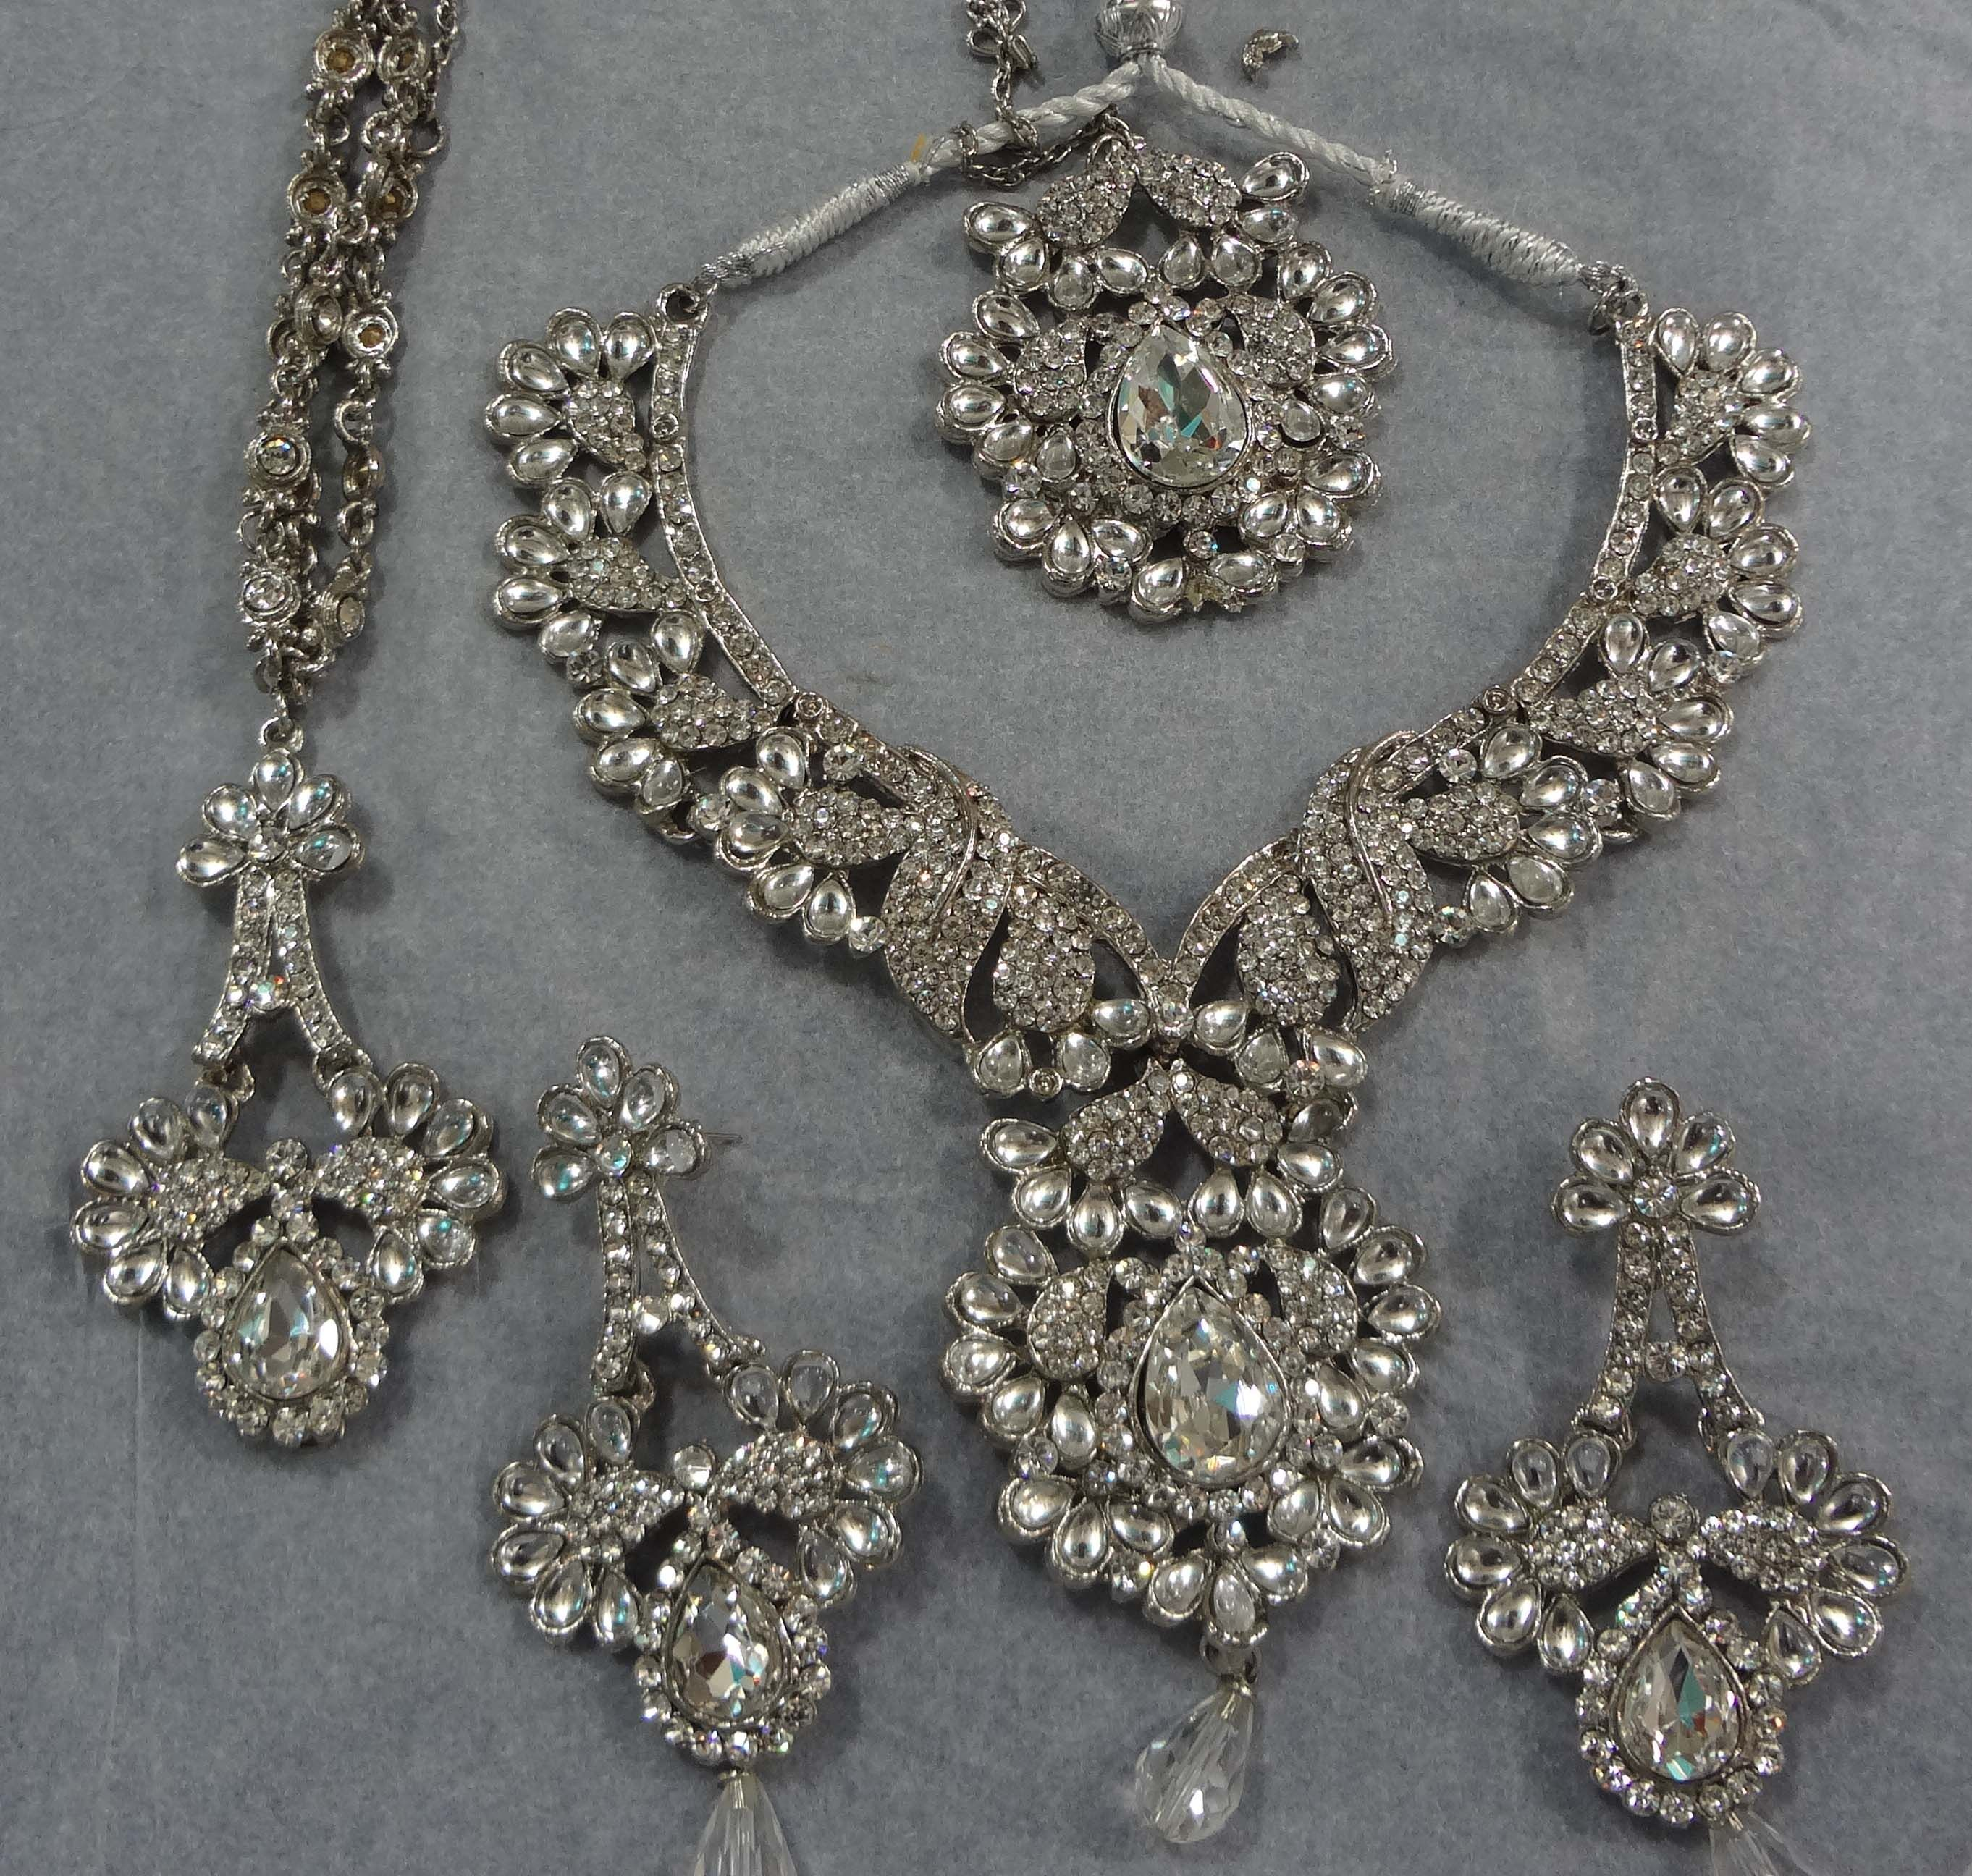 Bling Bling Elegant Designer Clear Crystal Diamante Exclusive Bridal Necklace and Earrings Jewellery Set Vb03amgy1r